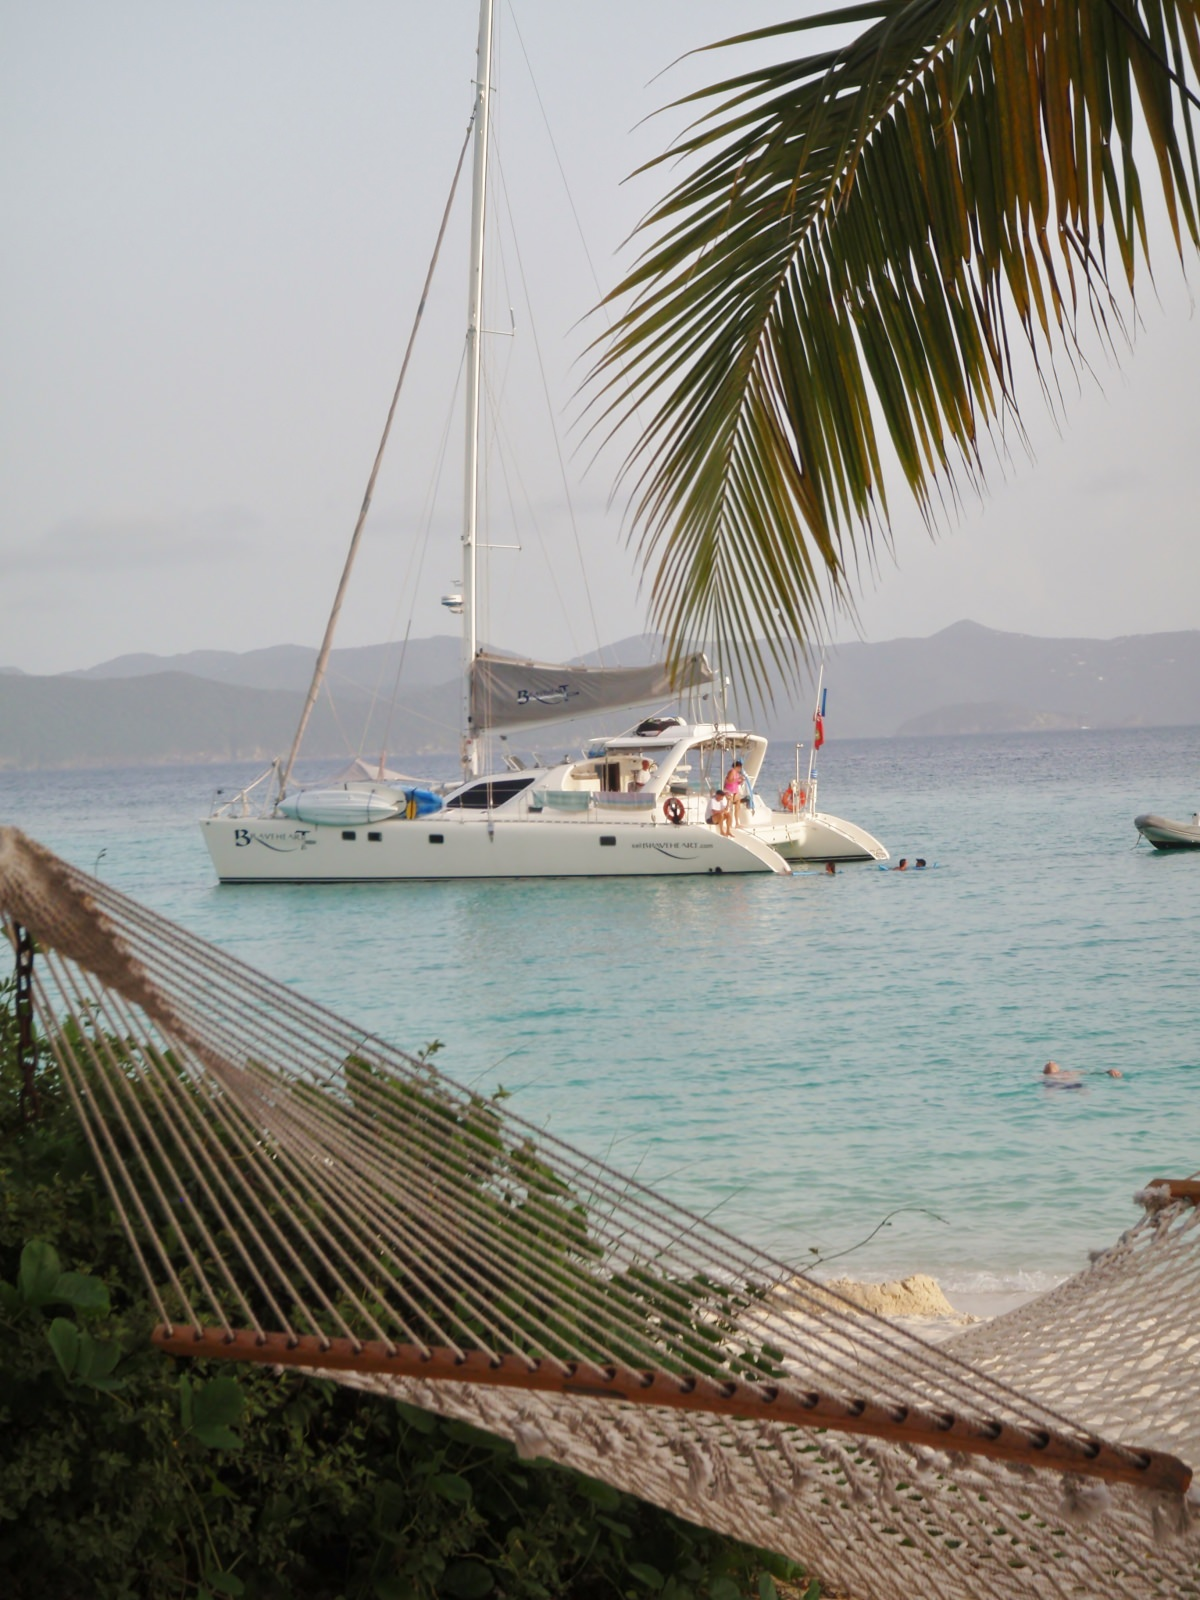 Relaxing at anchor by the beach